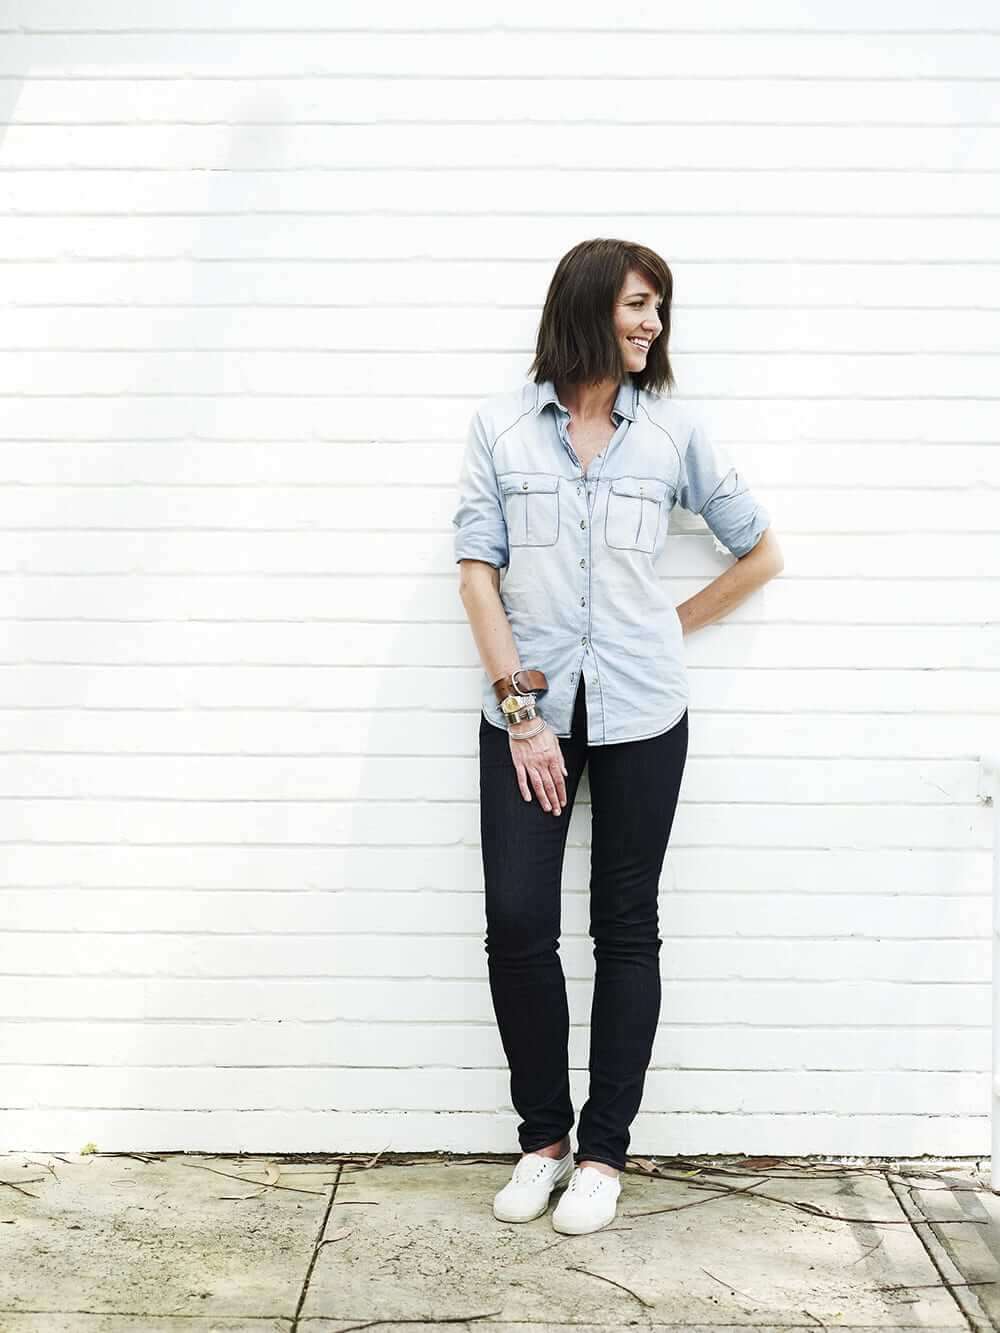 Megan Morton looking sideways and smiling, standing in front of a white brick wall